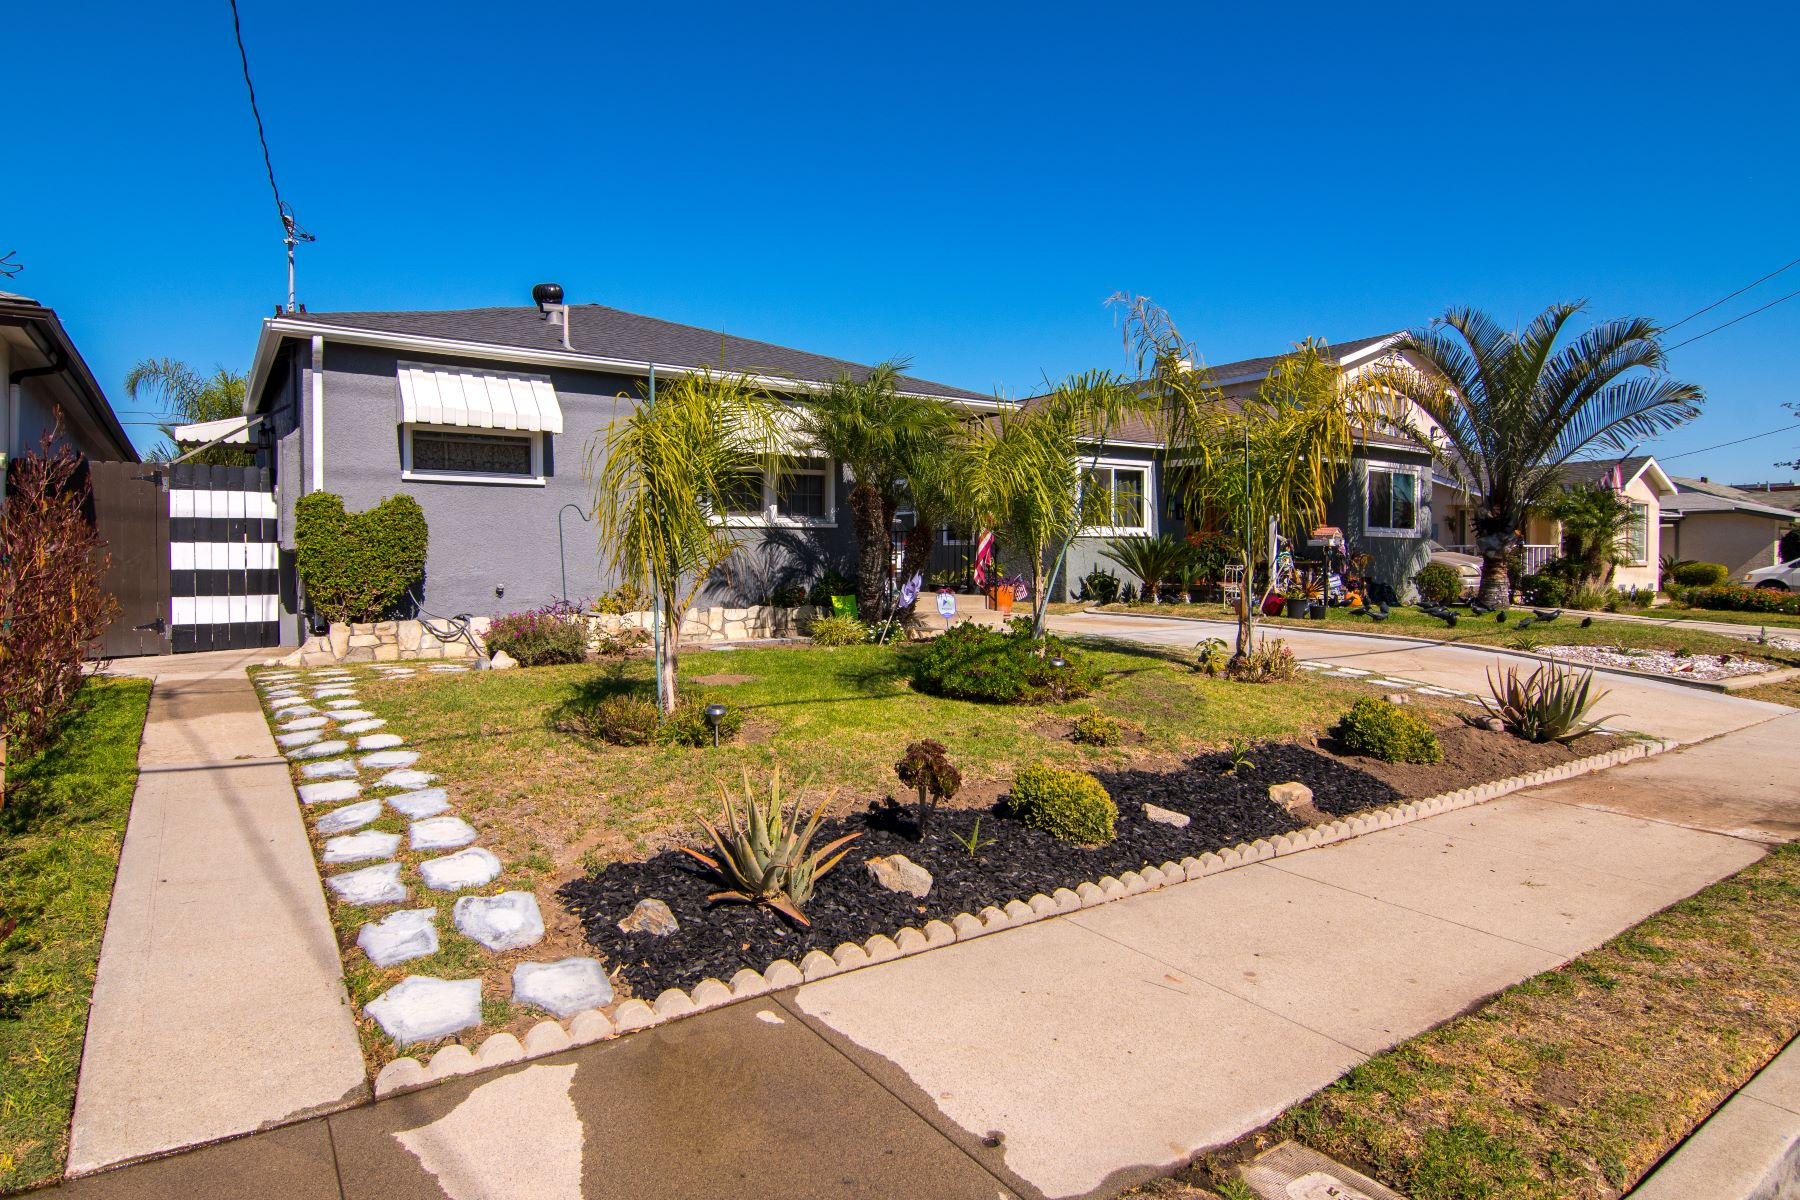 Single Family Homes for Sale at 4527 West 142nd Street, Hawthorne, CA 90250 4527 West 142nd Street Hawthorne, California 90250 United States